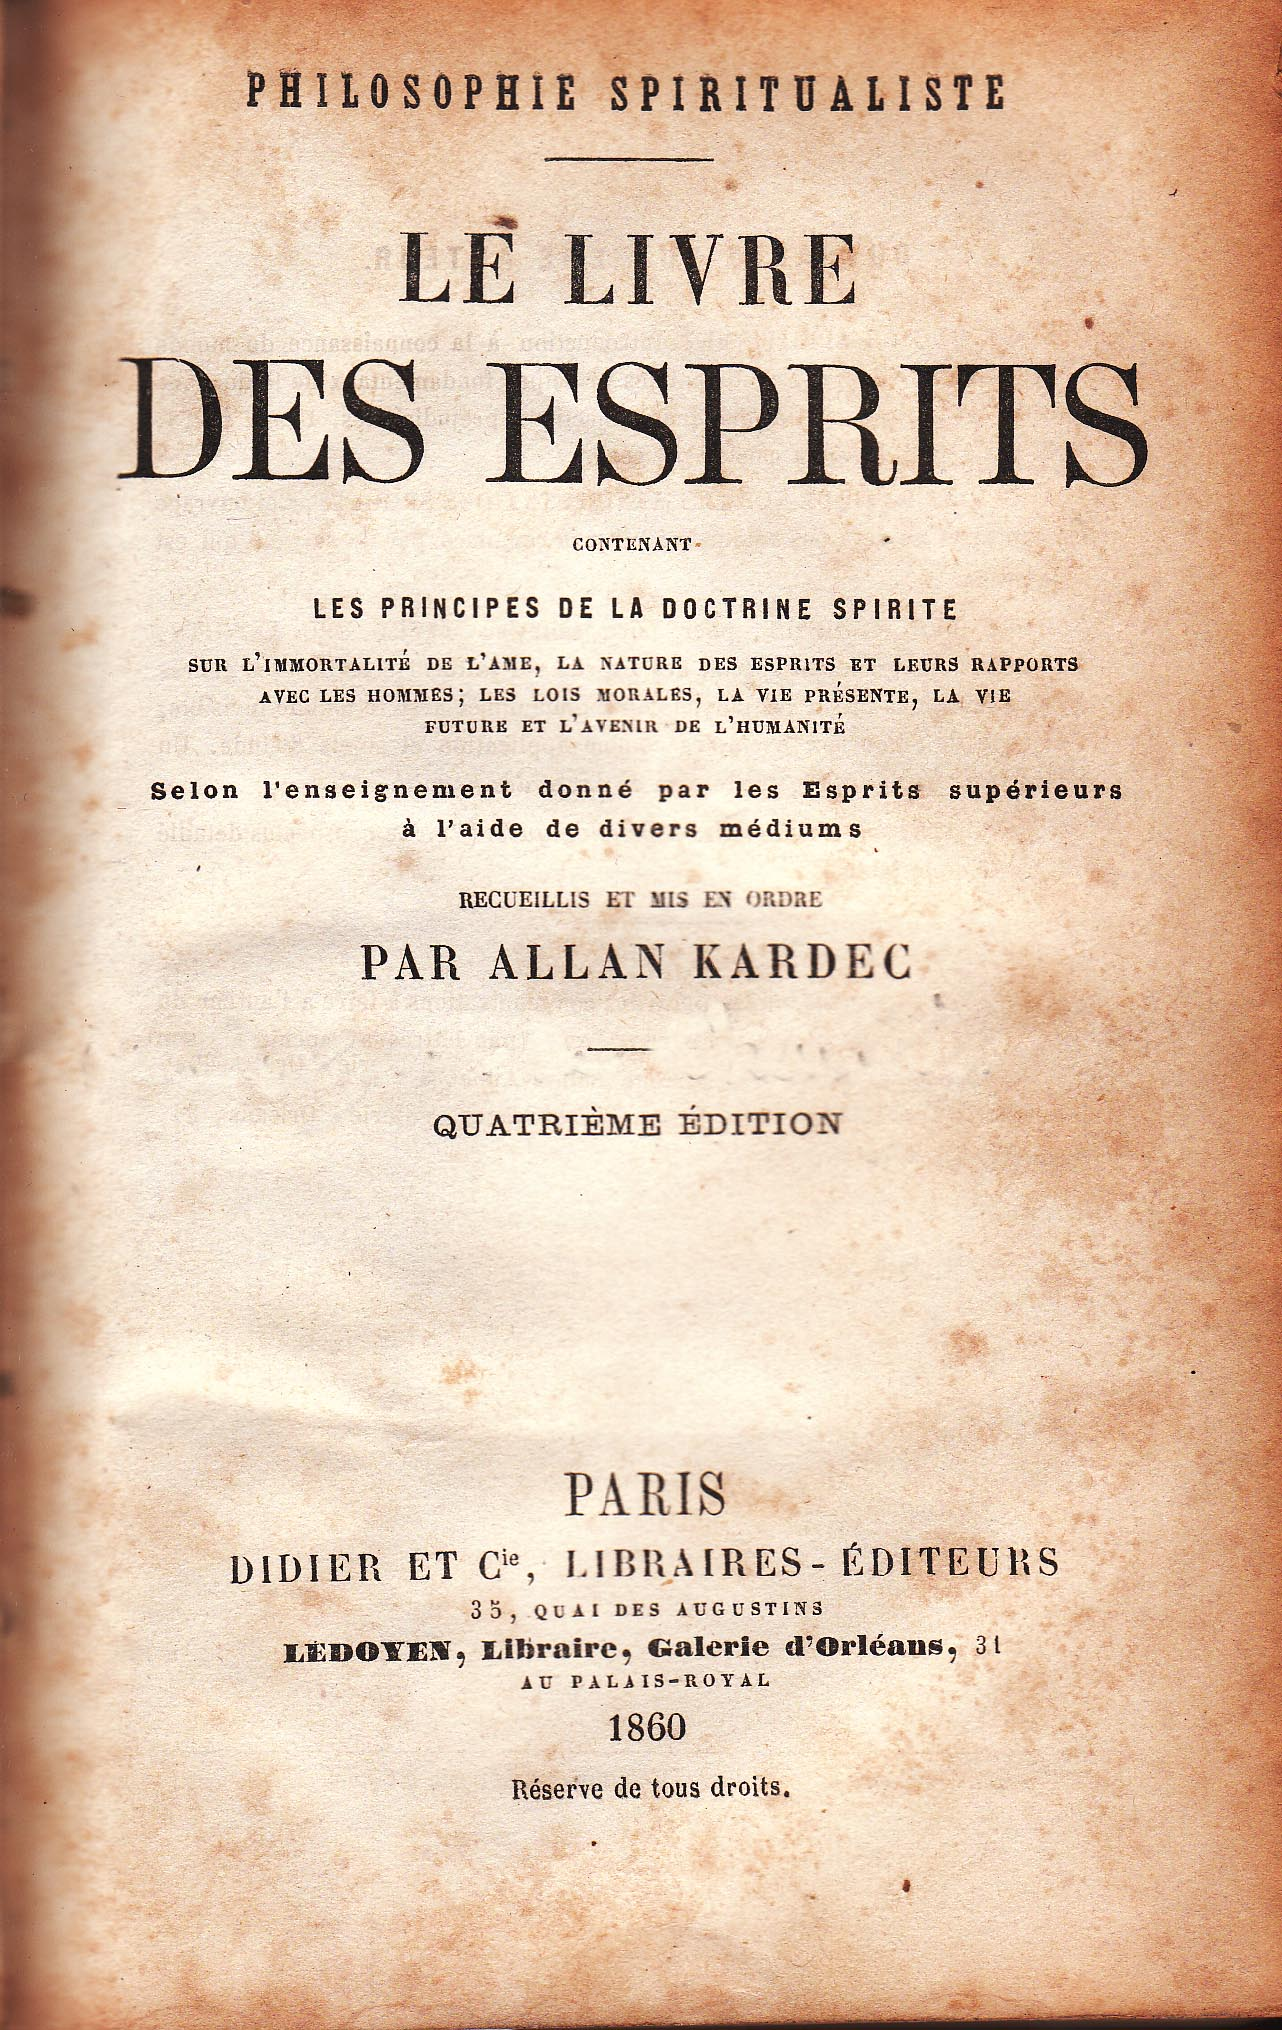 upload.wikimedia.org/wikipedia/commons/5/53/Le_Livre_des_Esprits_2.jpg